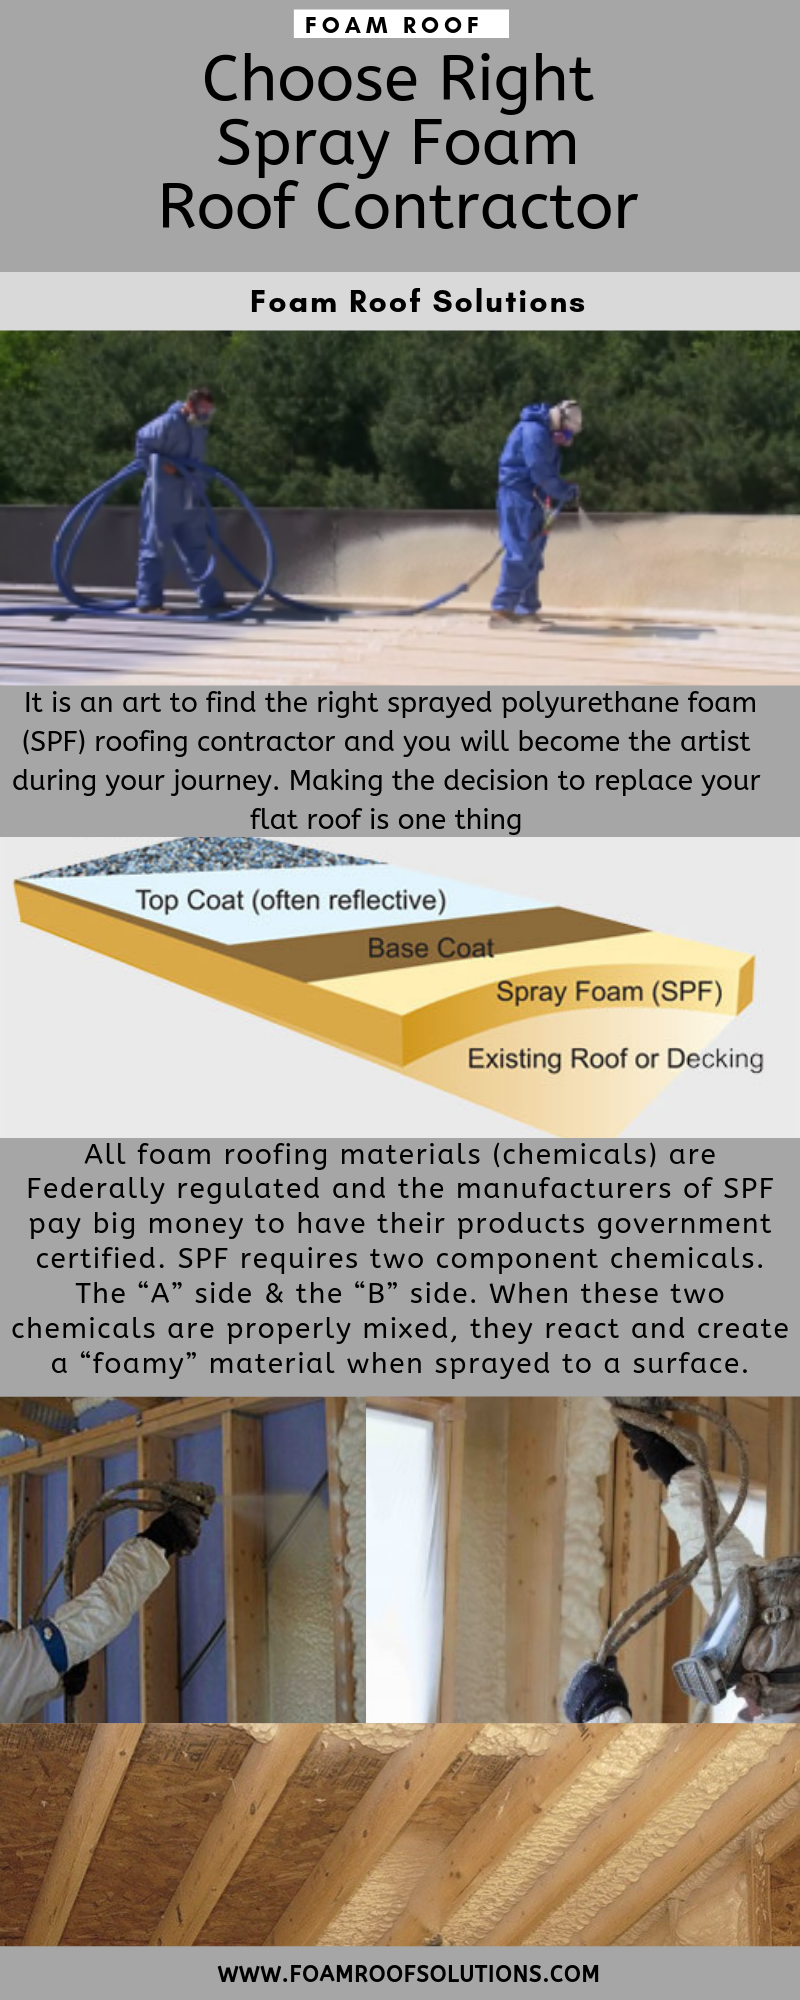 Yes Believe It Or Not It Is An Art To Find The Right Sprayed Polyurethane Foam Spf Roofing Contractor A Spray Foam Roofing Foam Roofing Roofing Contractors